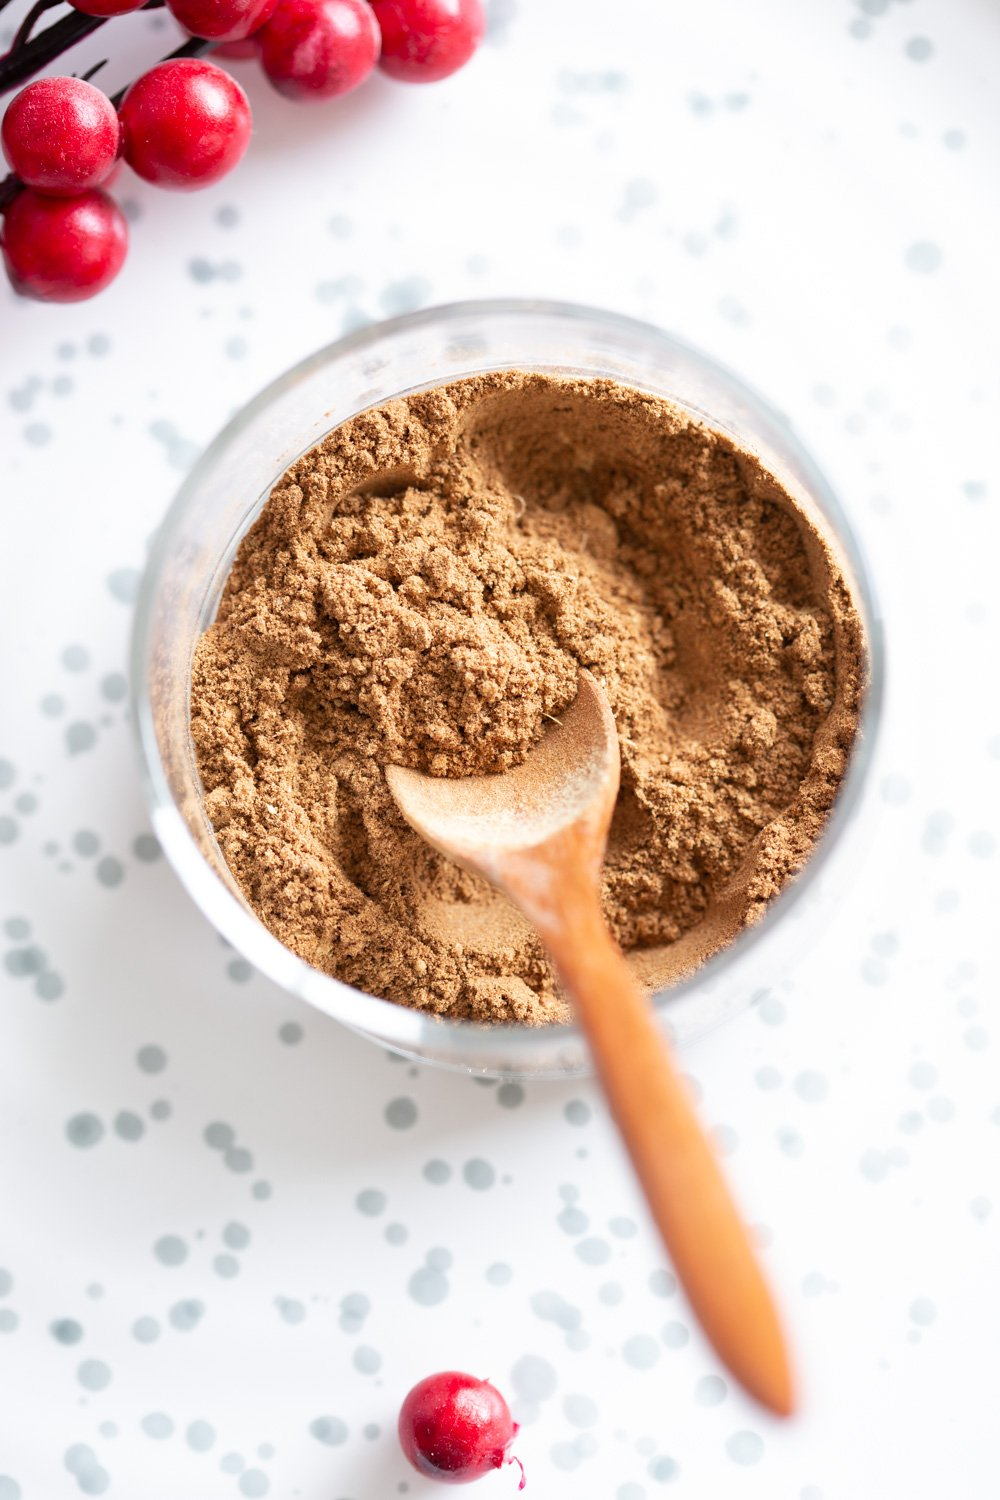 How to make Gingerbread Spice Mix. Easy gingerbread spice with everyday ingredients. Use in gingerbread cake, gingerbread cookies, latte and more. Great for gifting. Vegan Glutenfree #vegan #veganricha